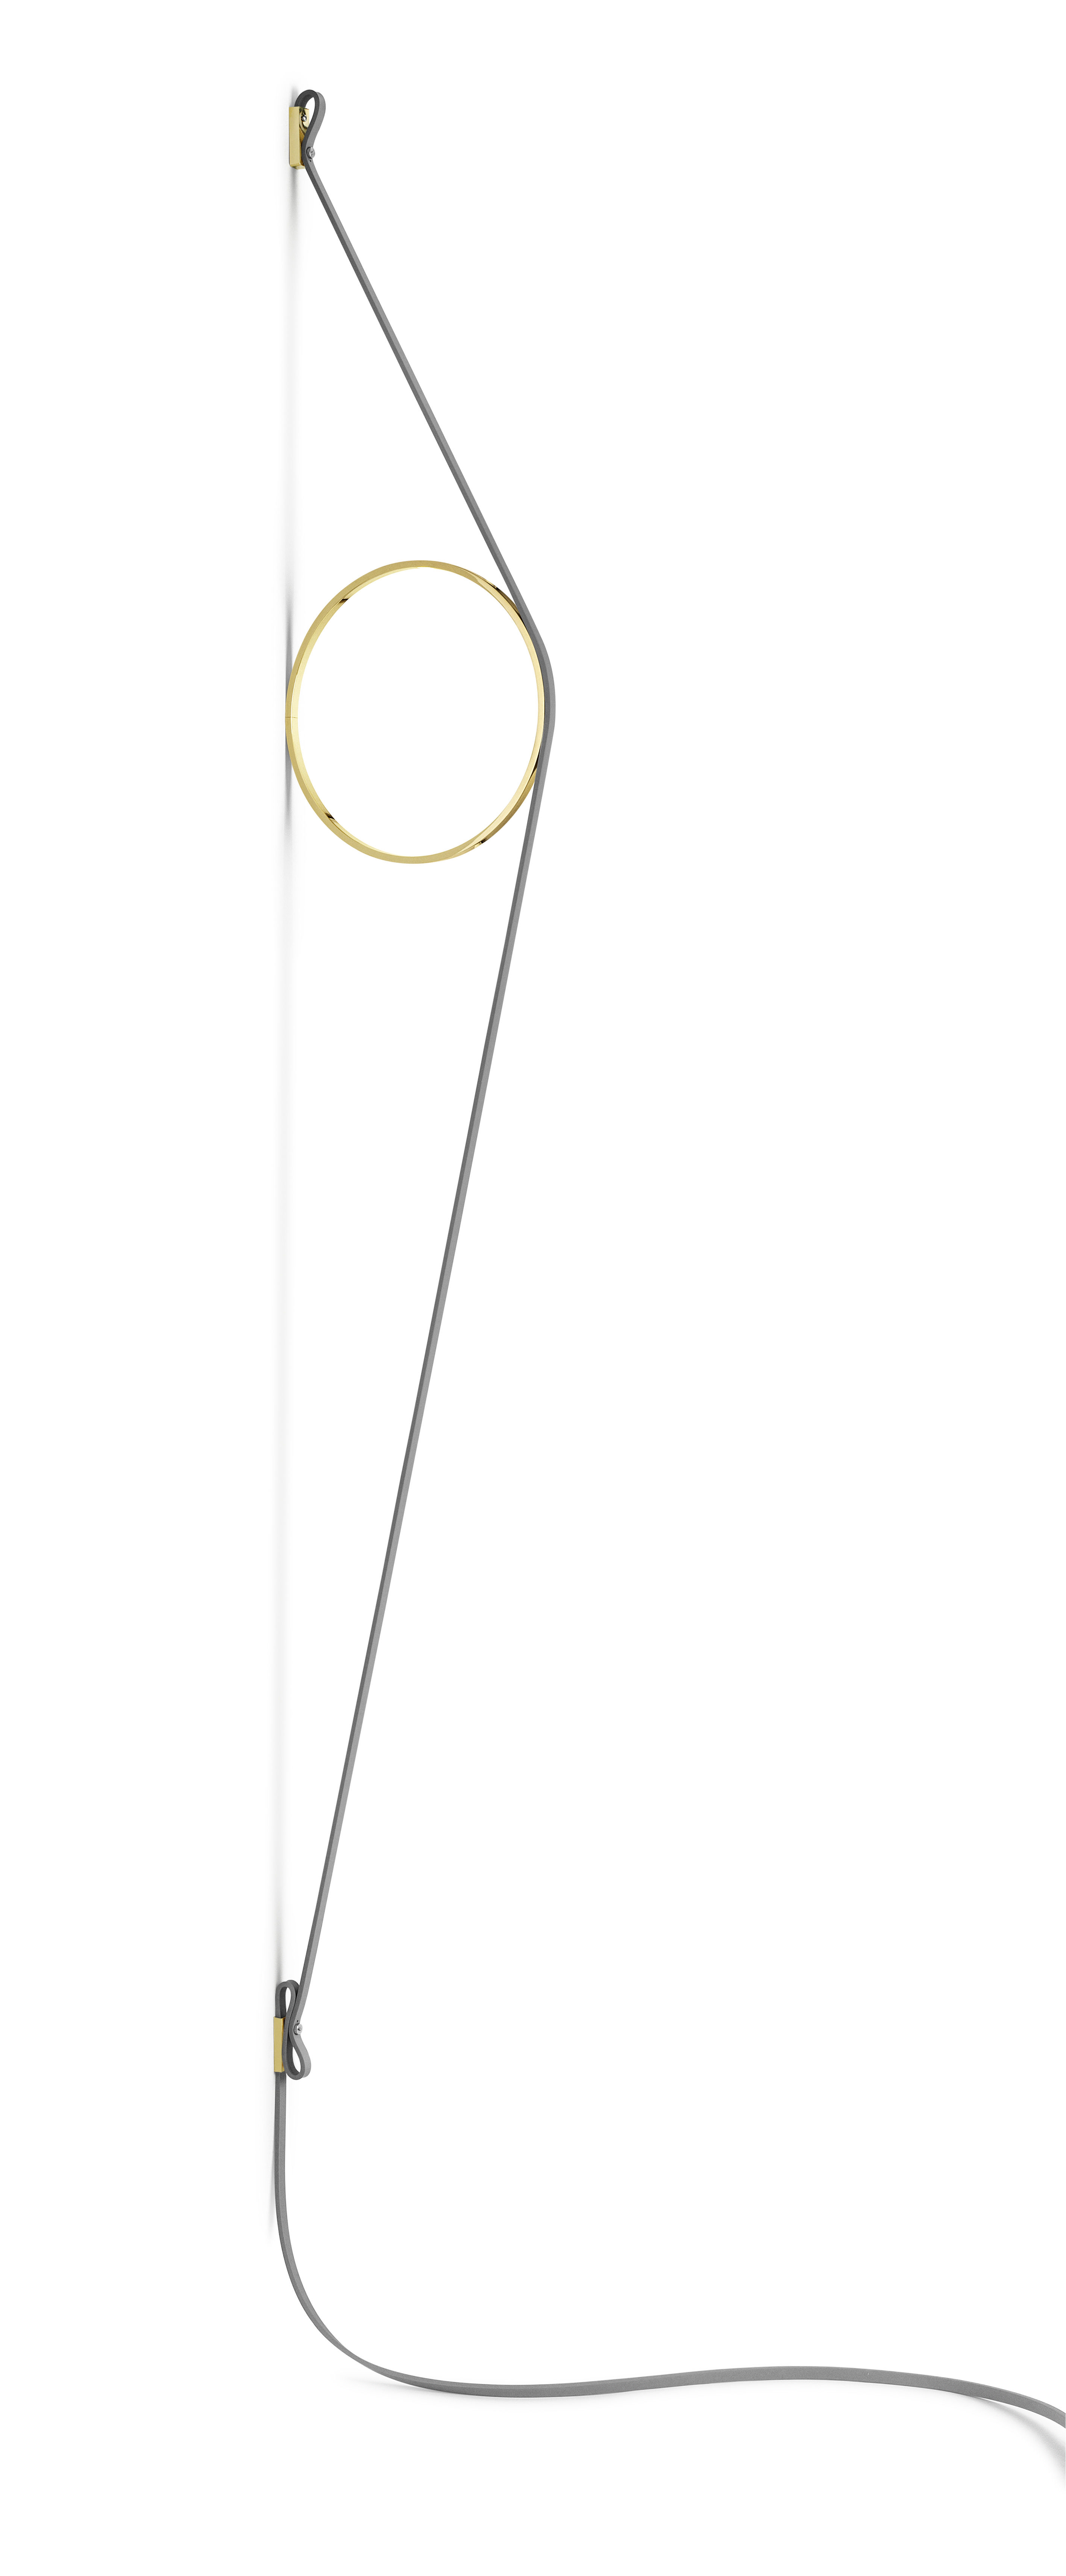 Lighting - Wall Lights - Wirering Wall light - / LED - H 208 cm by Flos - Grey cable / Gold ring - Aluminium, Rubber